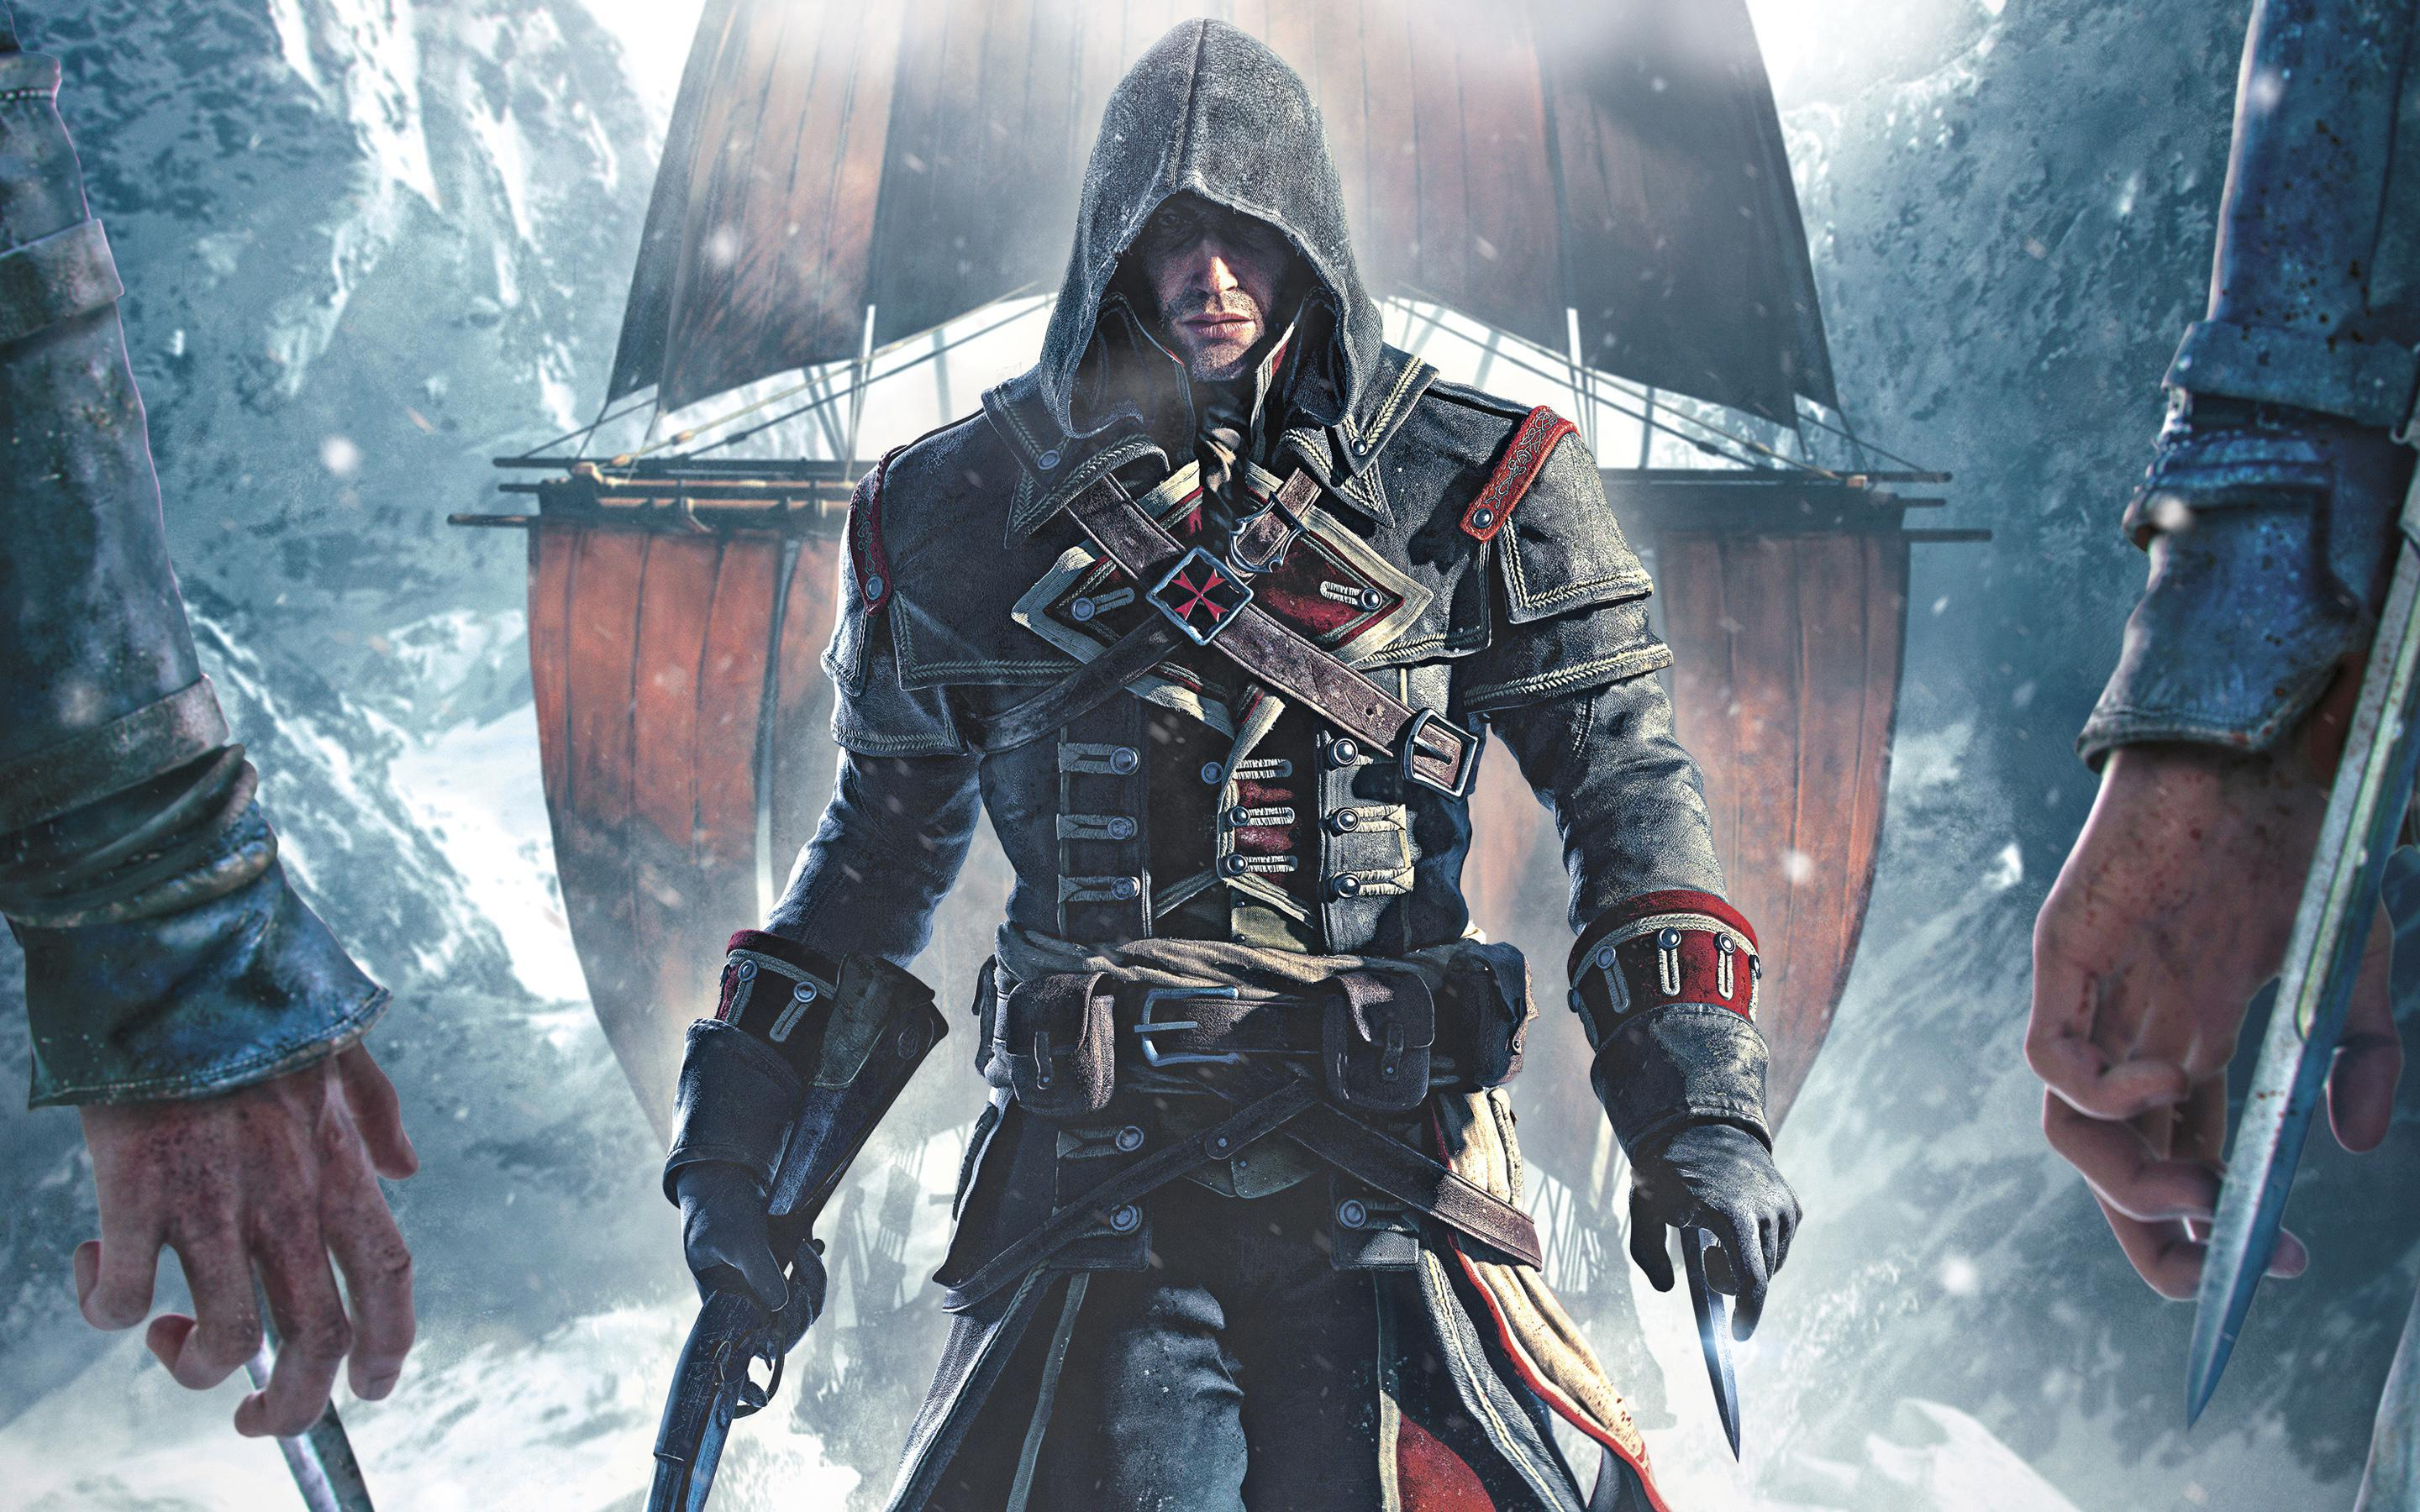 The Assassin's Creed Rogue launch trailer is here!